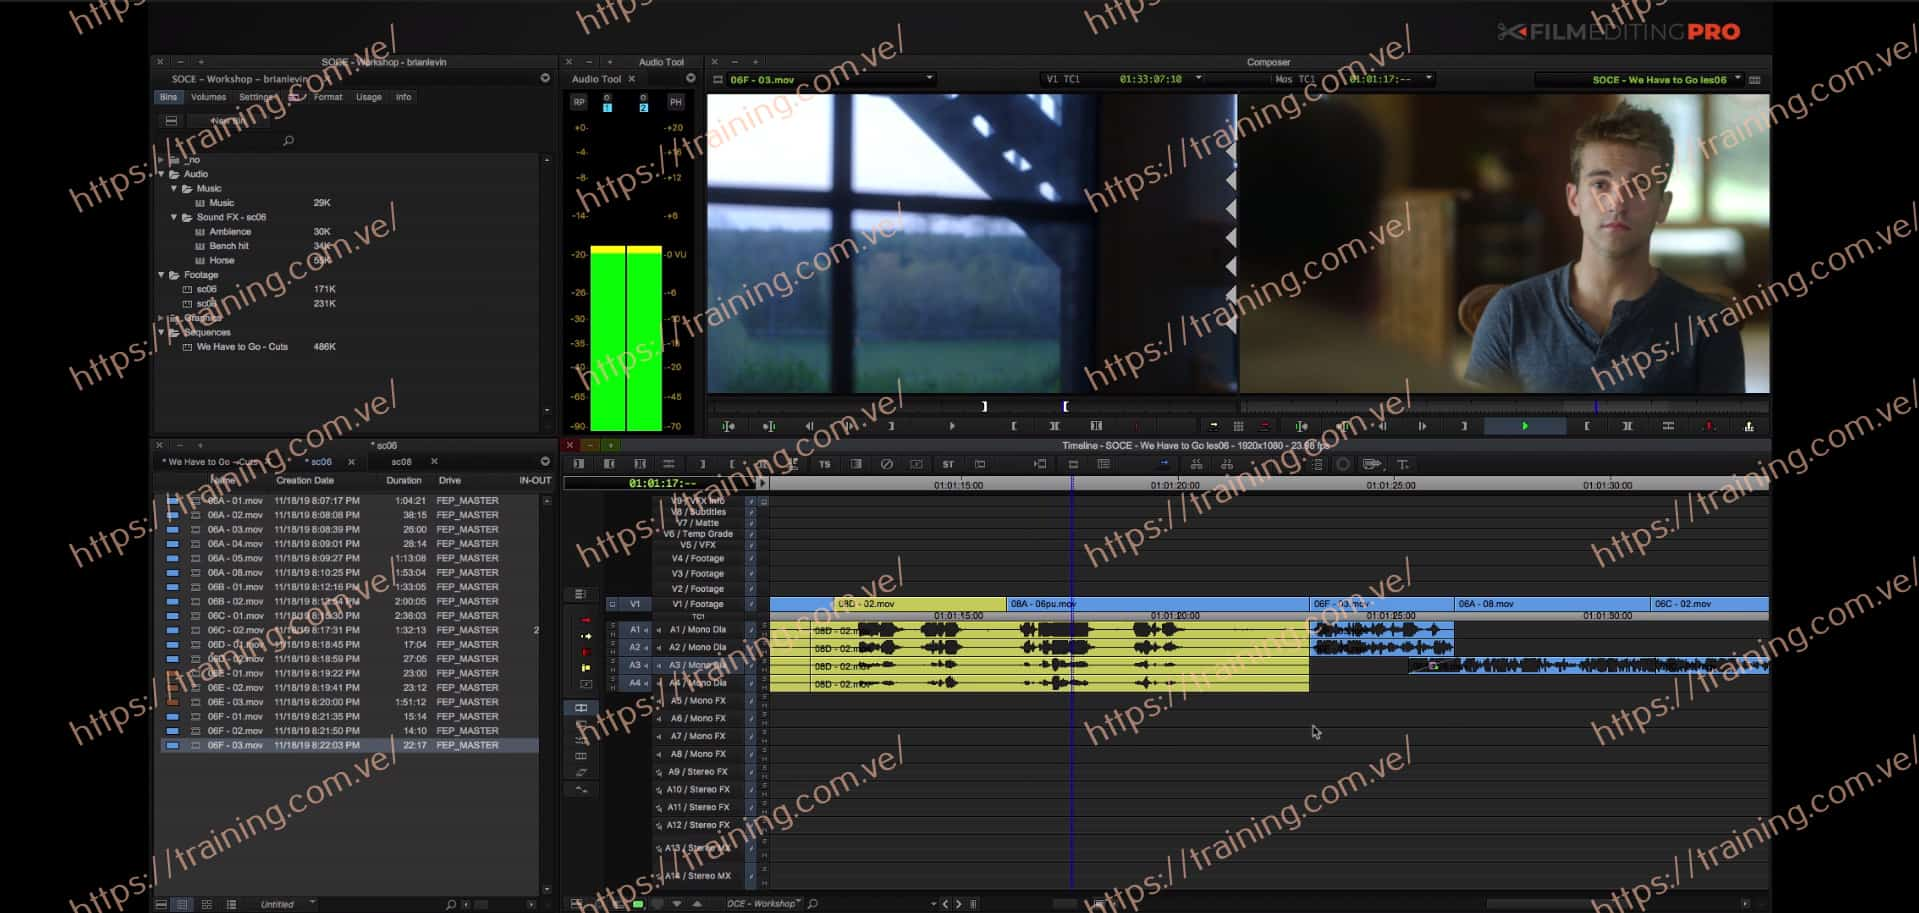 SECRETS OF CREATIVE EDITING by Film Editing Pro Offer